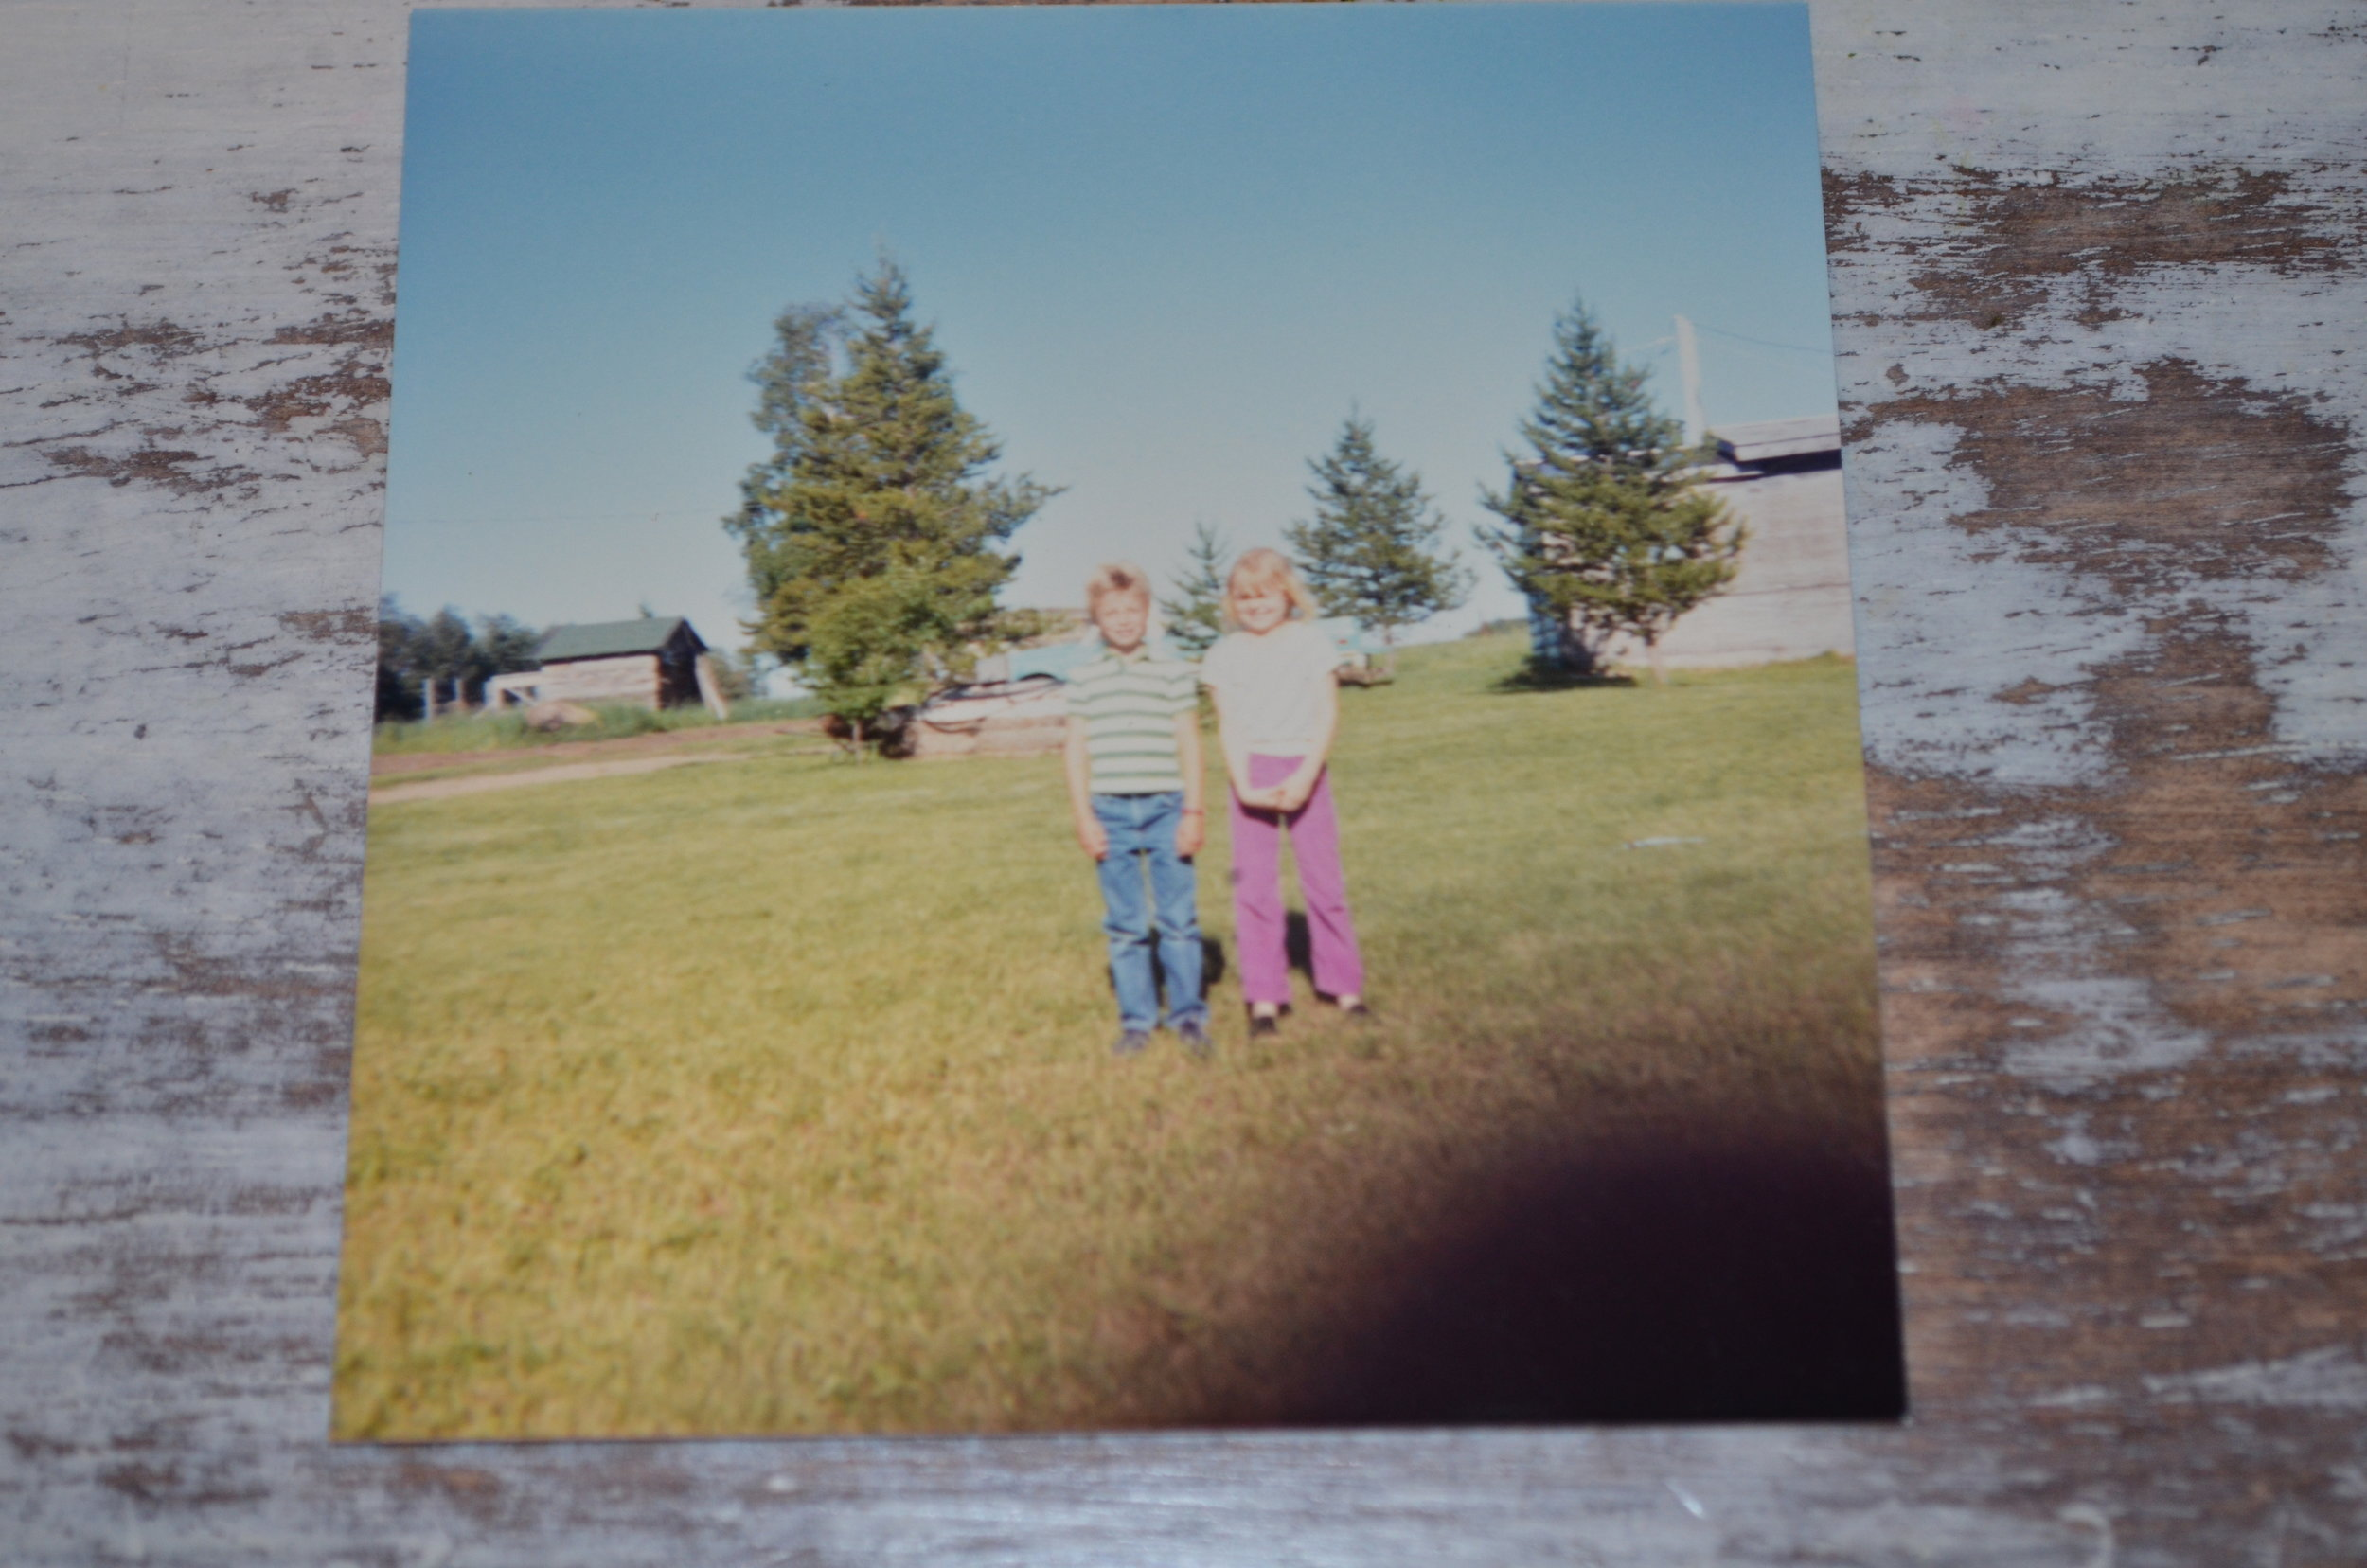 One of the only pictures I have of our trip to Alberta. I loved hanging out with my Canadian Cousins. (That's me on the right) Even though I don't have many pictures, I have held on to some amazing memories.